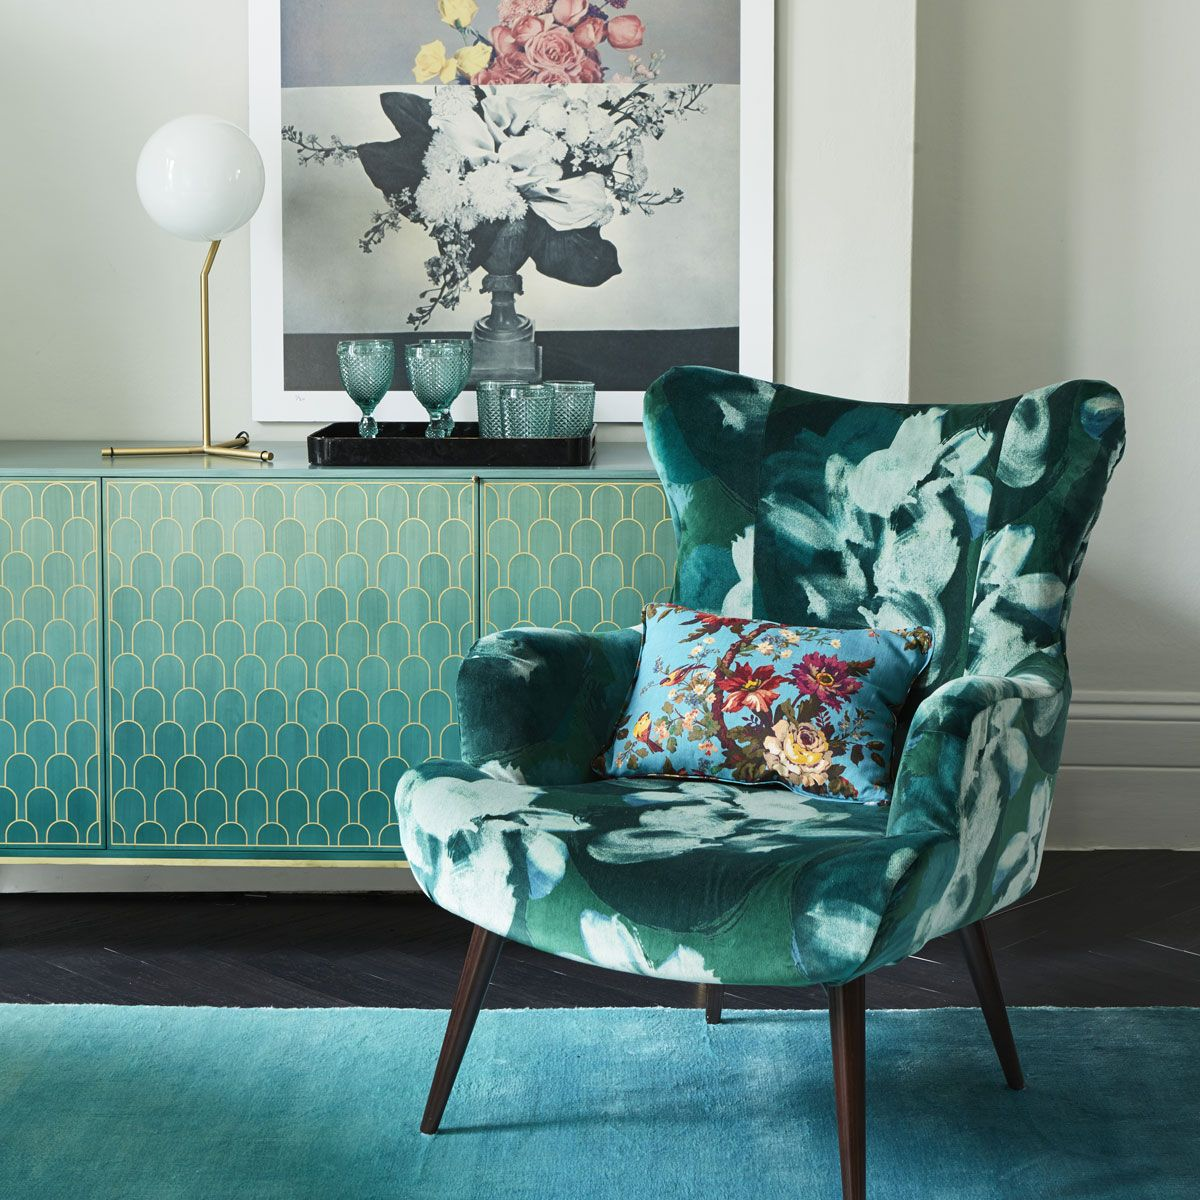 Elegant Contemporary Living Room Furniture: Elegant Reading Corner With Floral Armchair And Artwork In